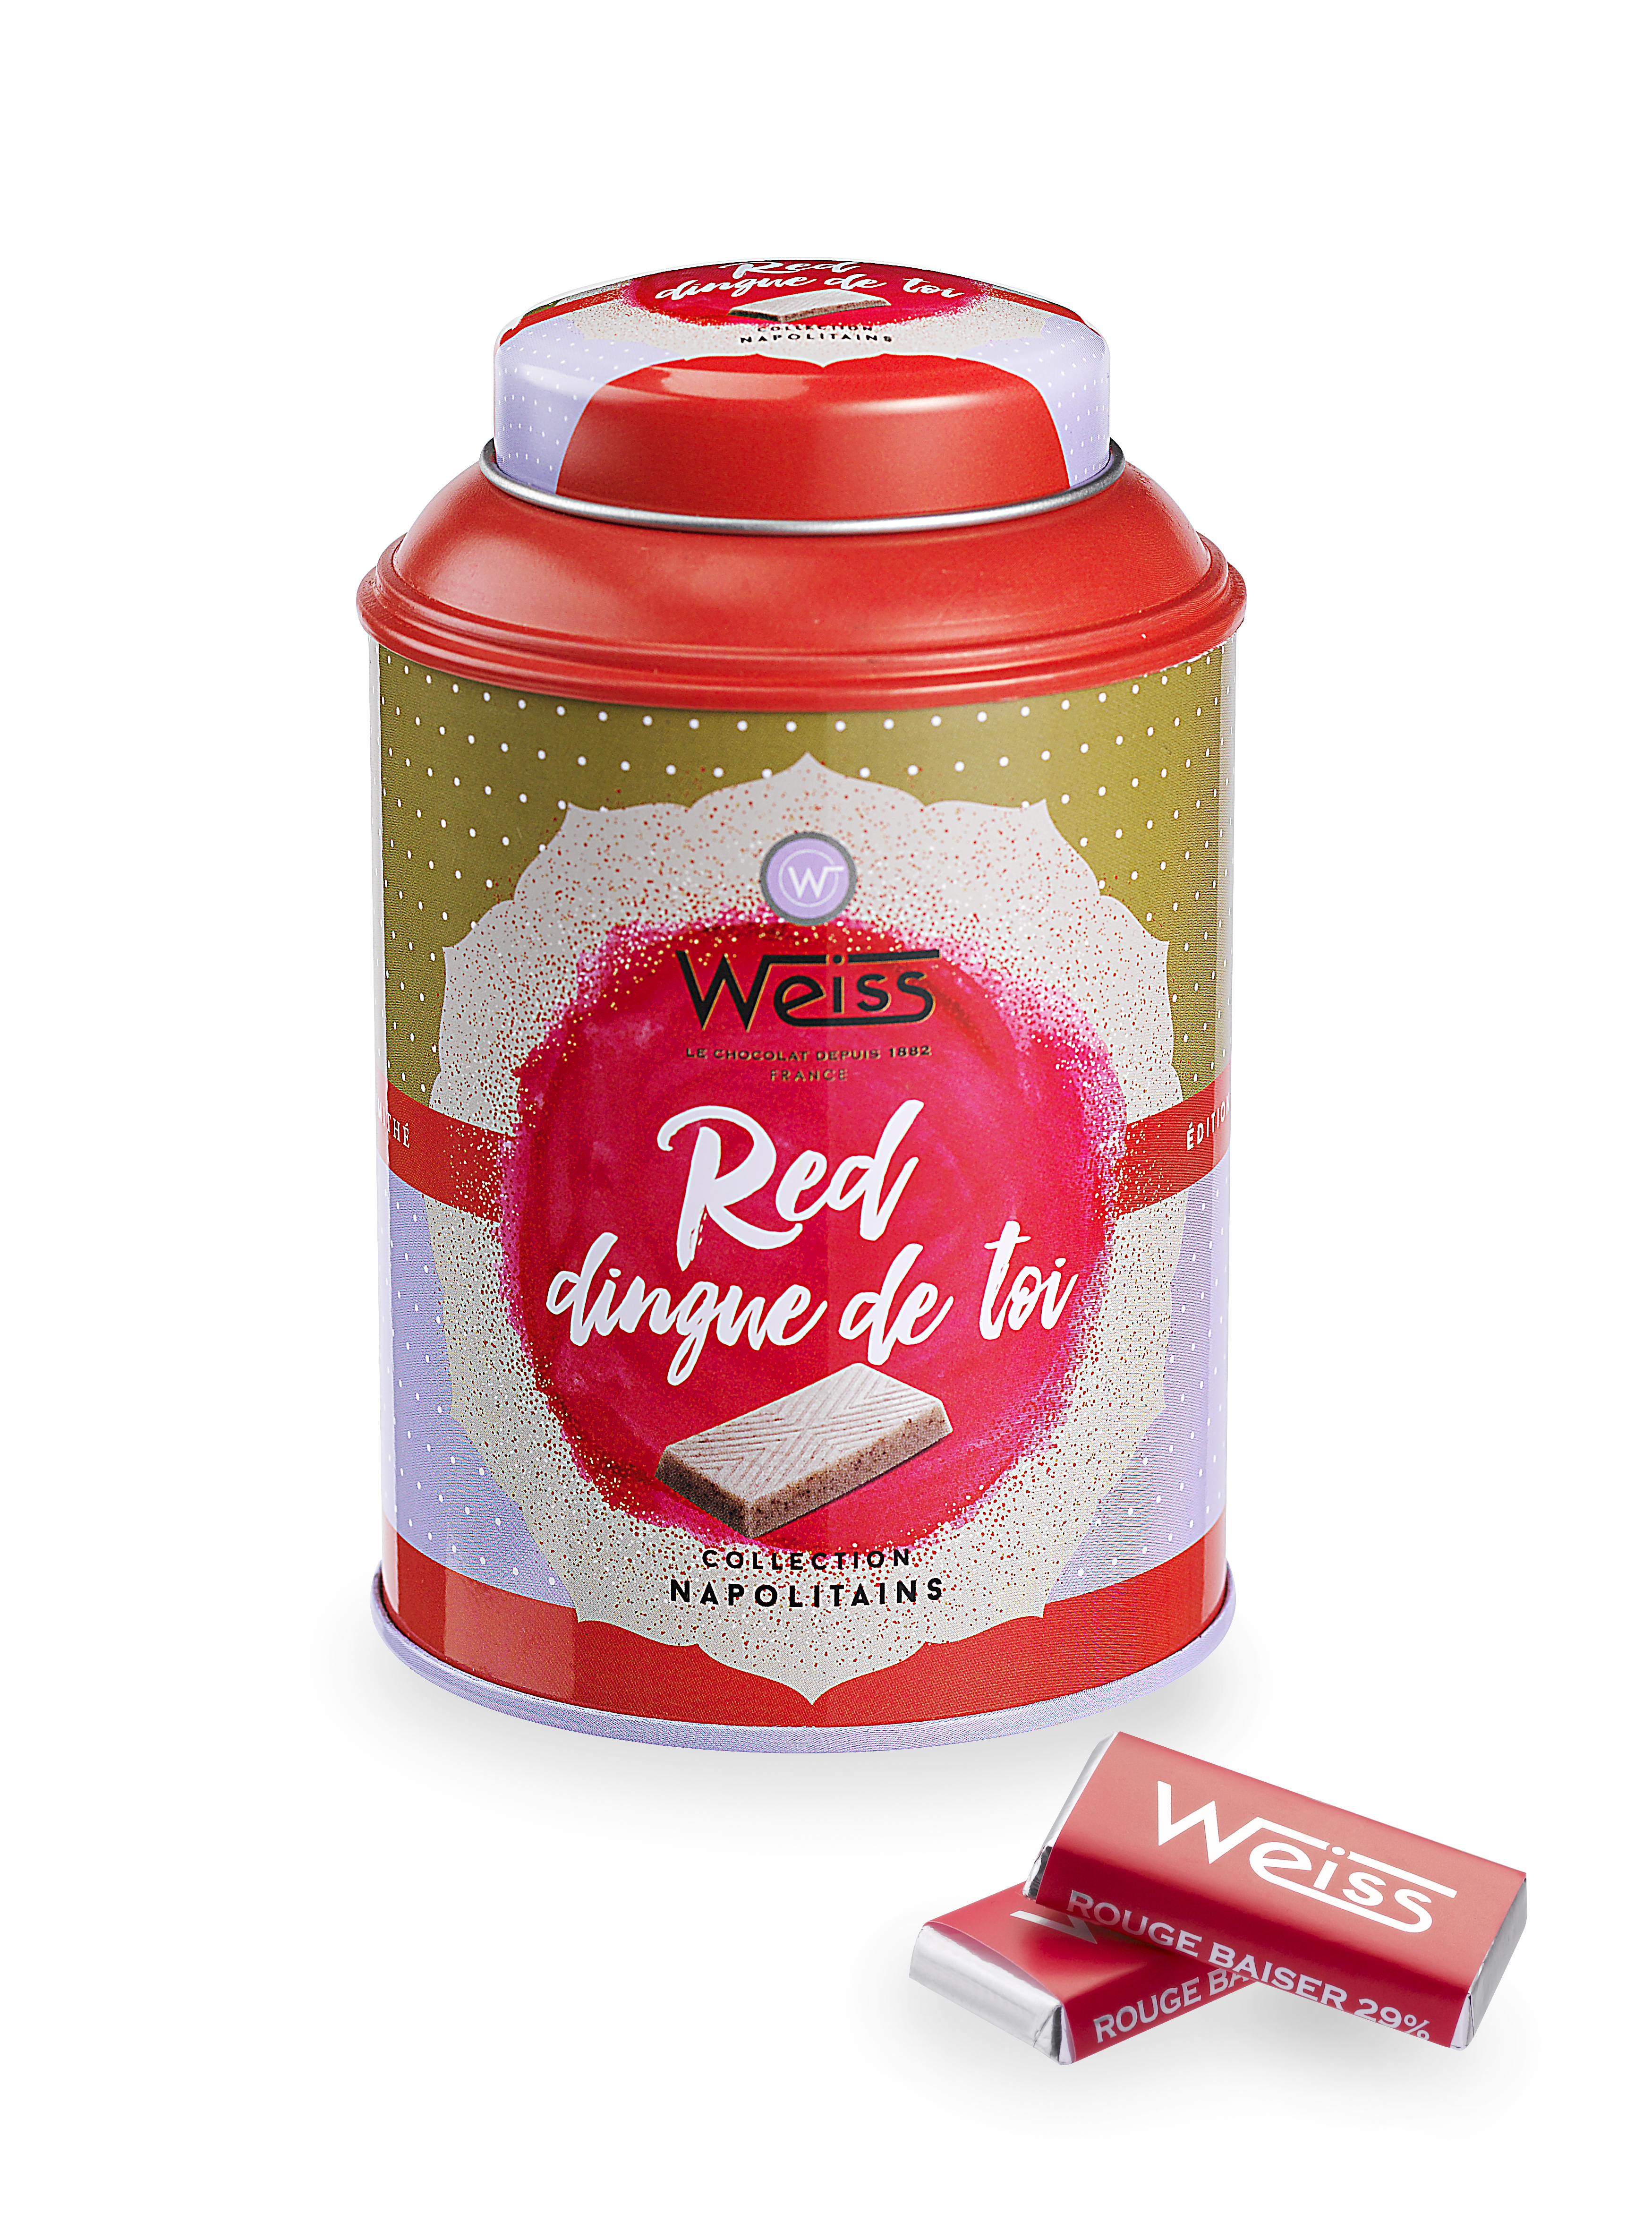 Edition Limi-Thé Napolitains Rouge Baiser 29%, Weiss (180 g)